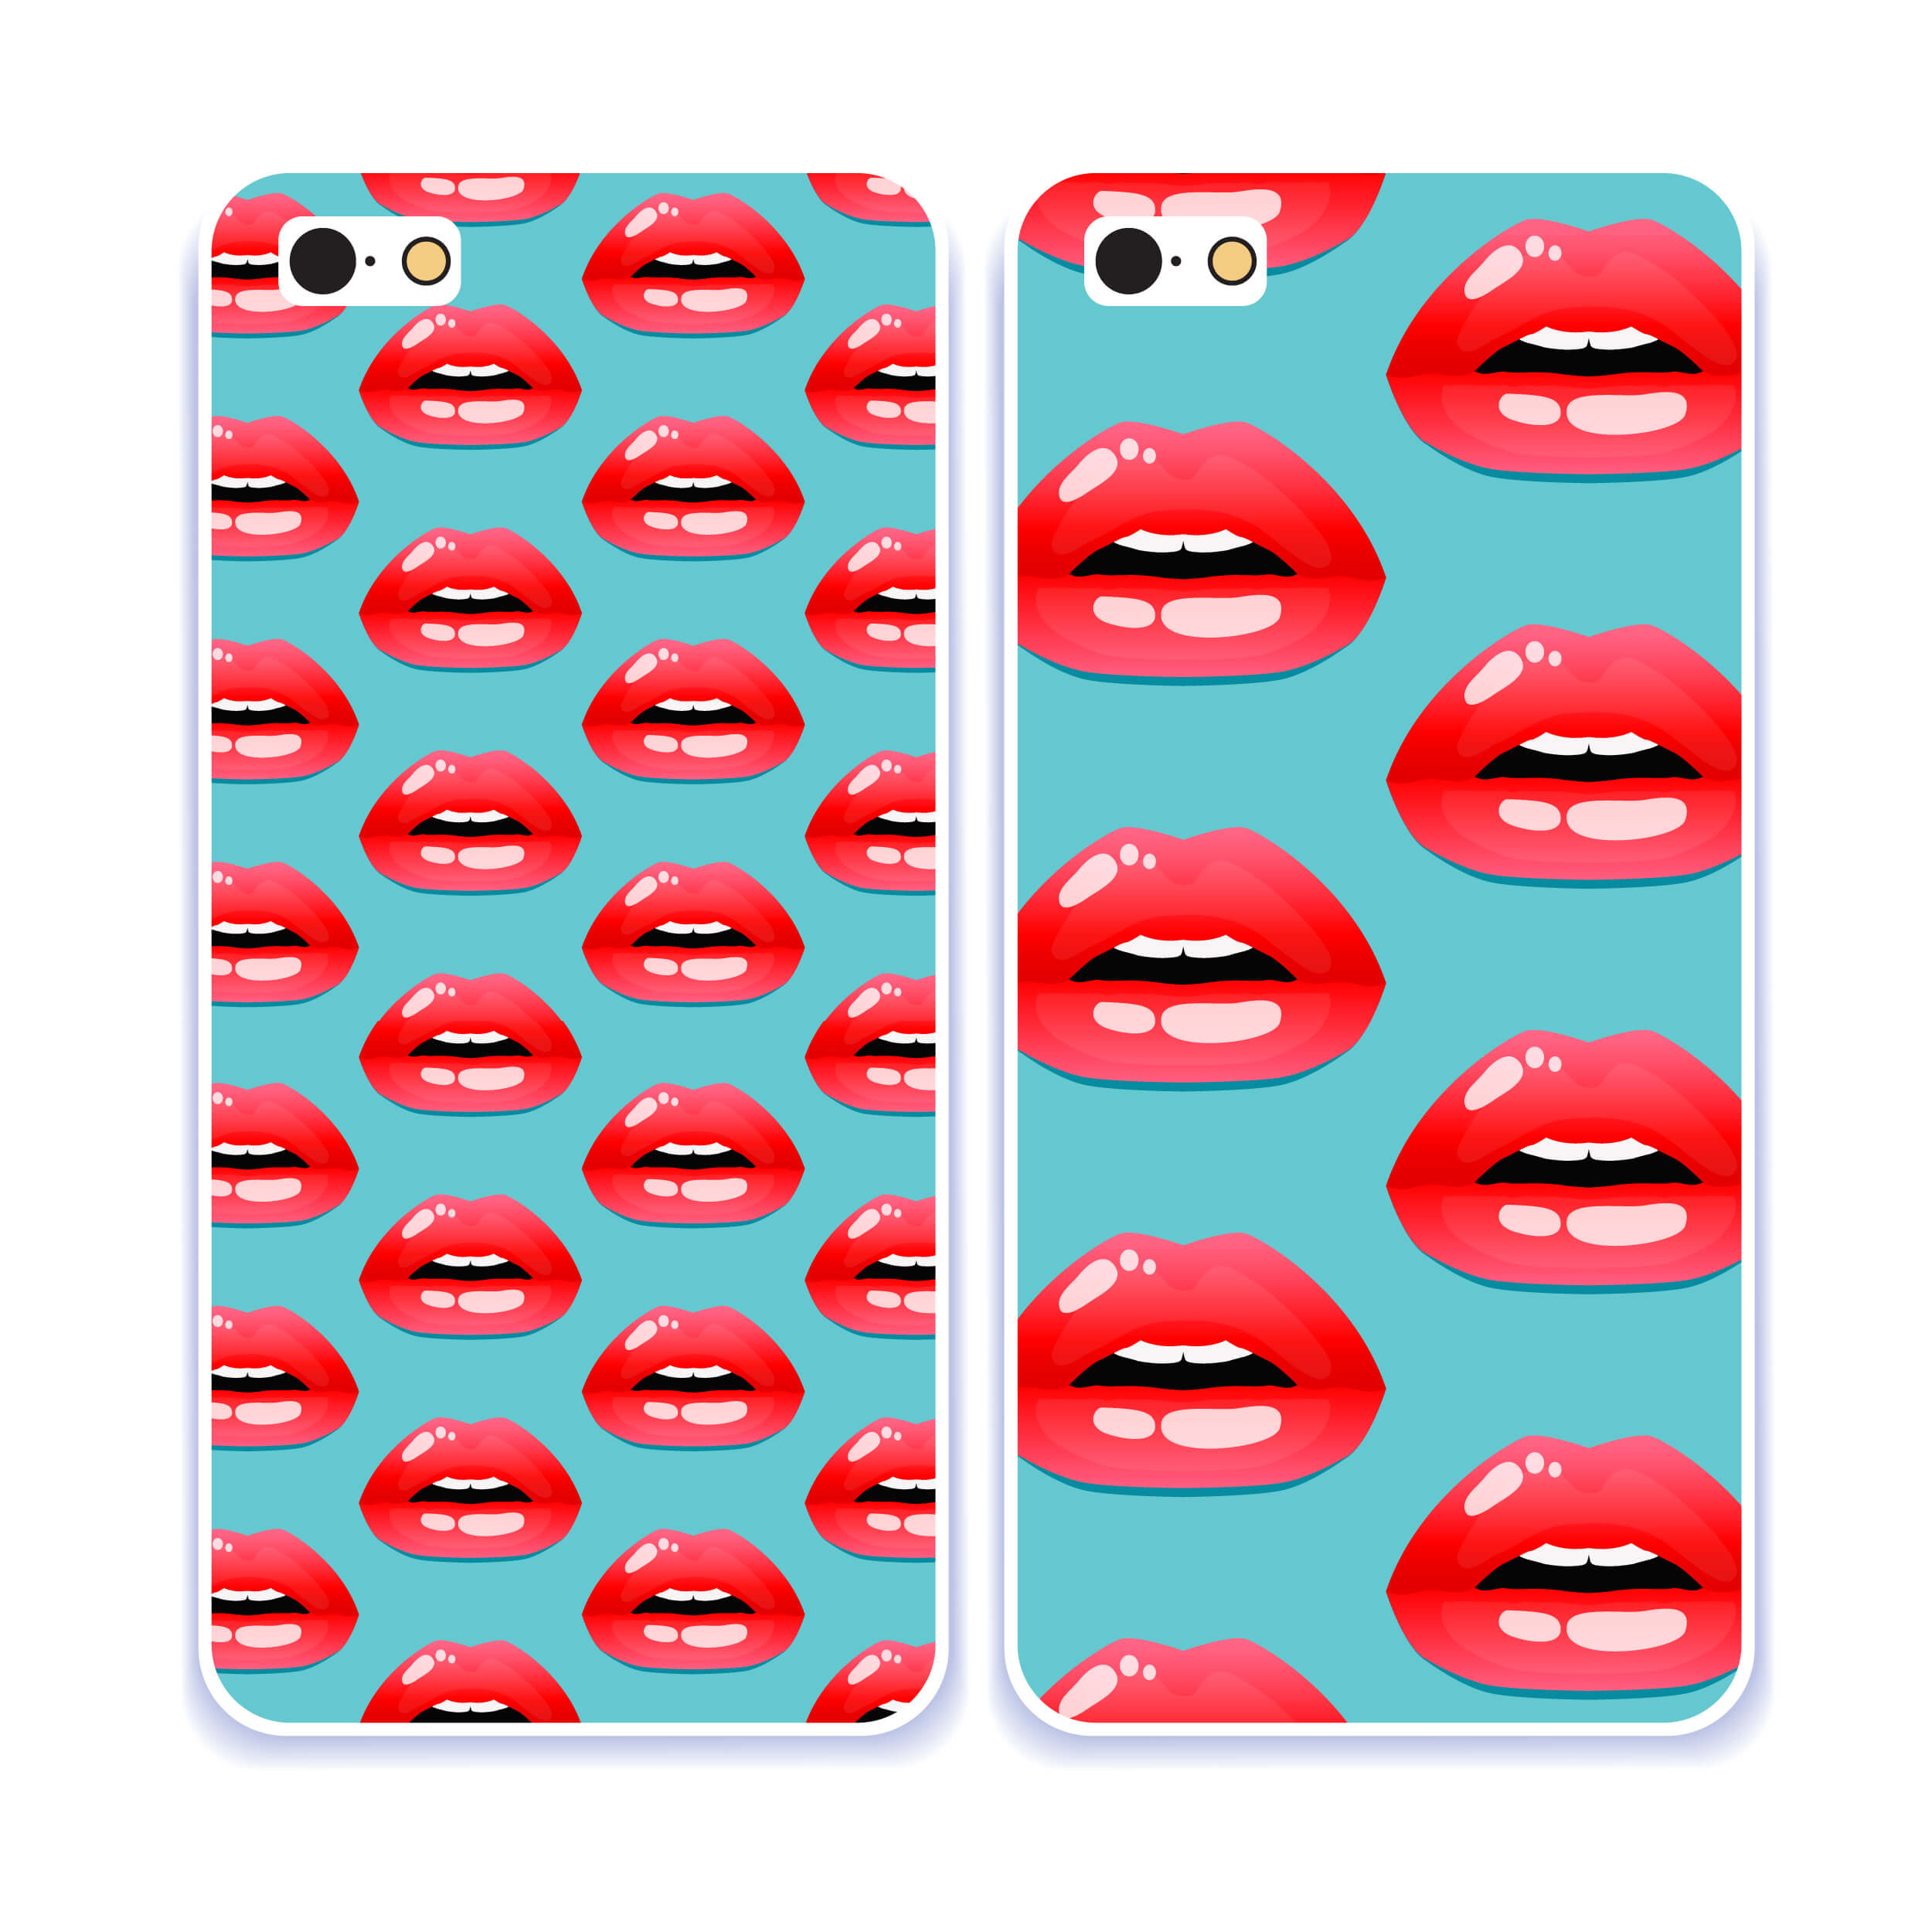 DIY iPhone cover - red lips patter iPhone cover